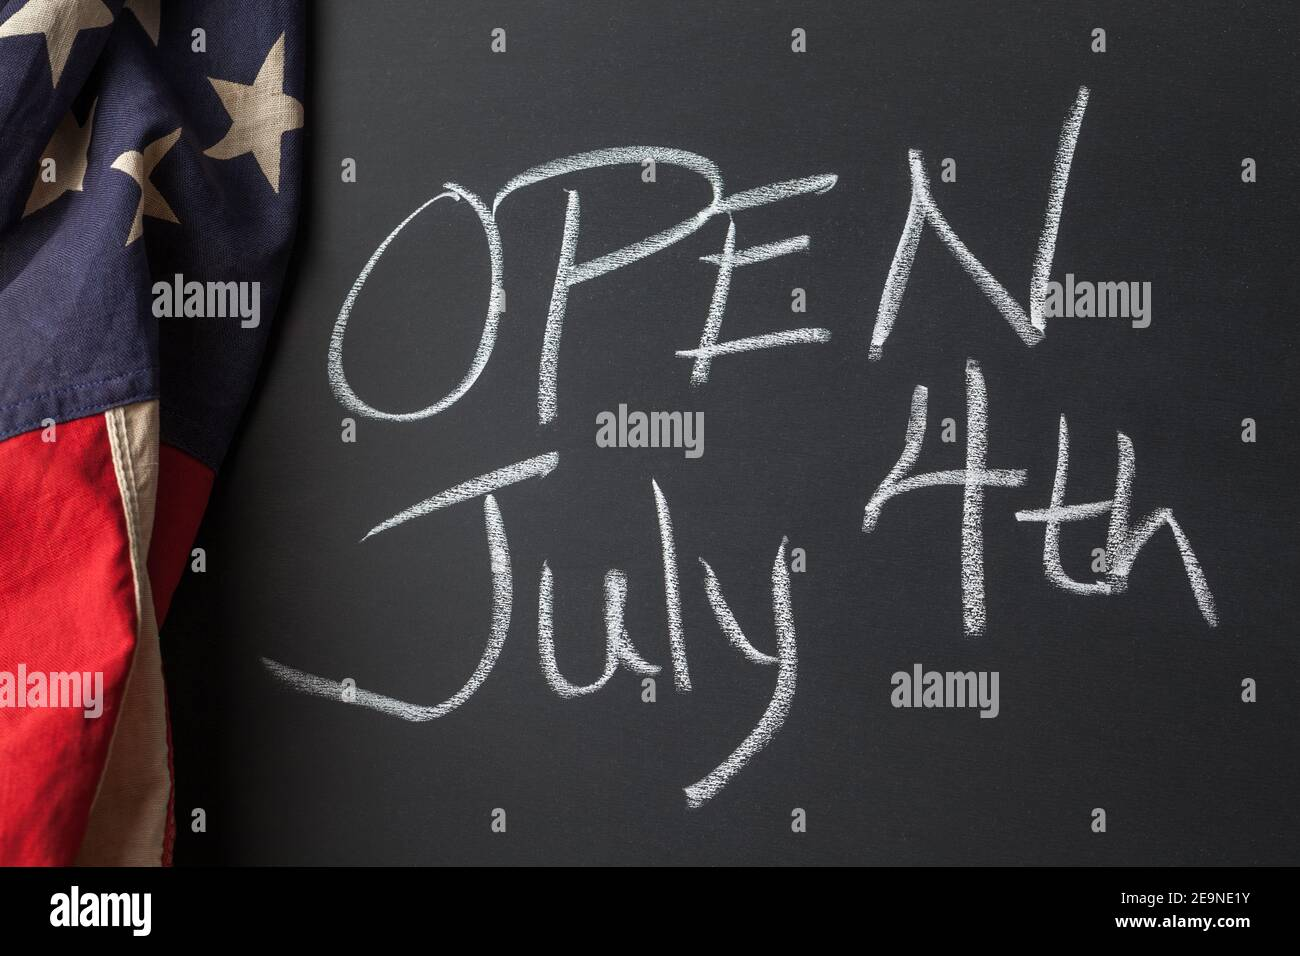 Open July 4th sign handwritten on a chalkboard bordered by a vintage American flag Stock Photo